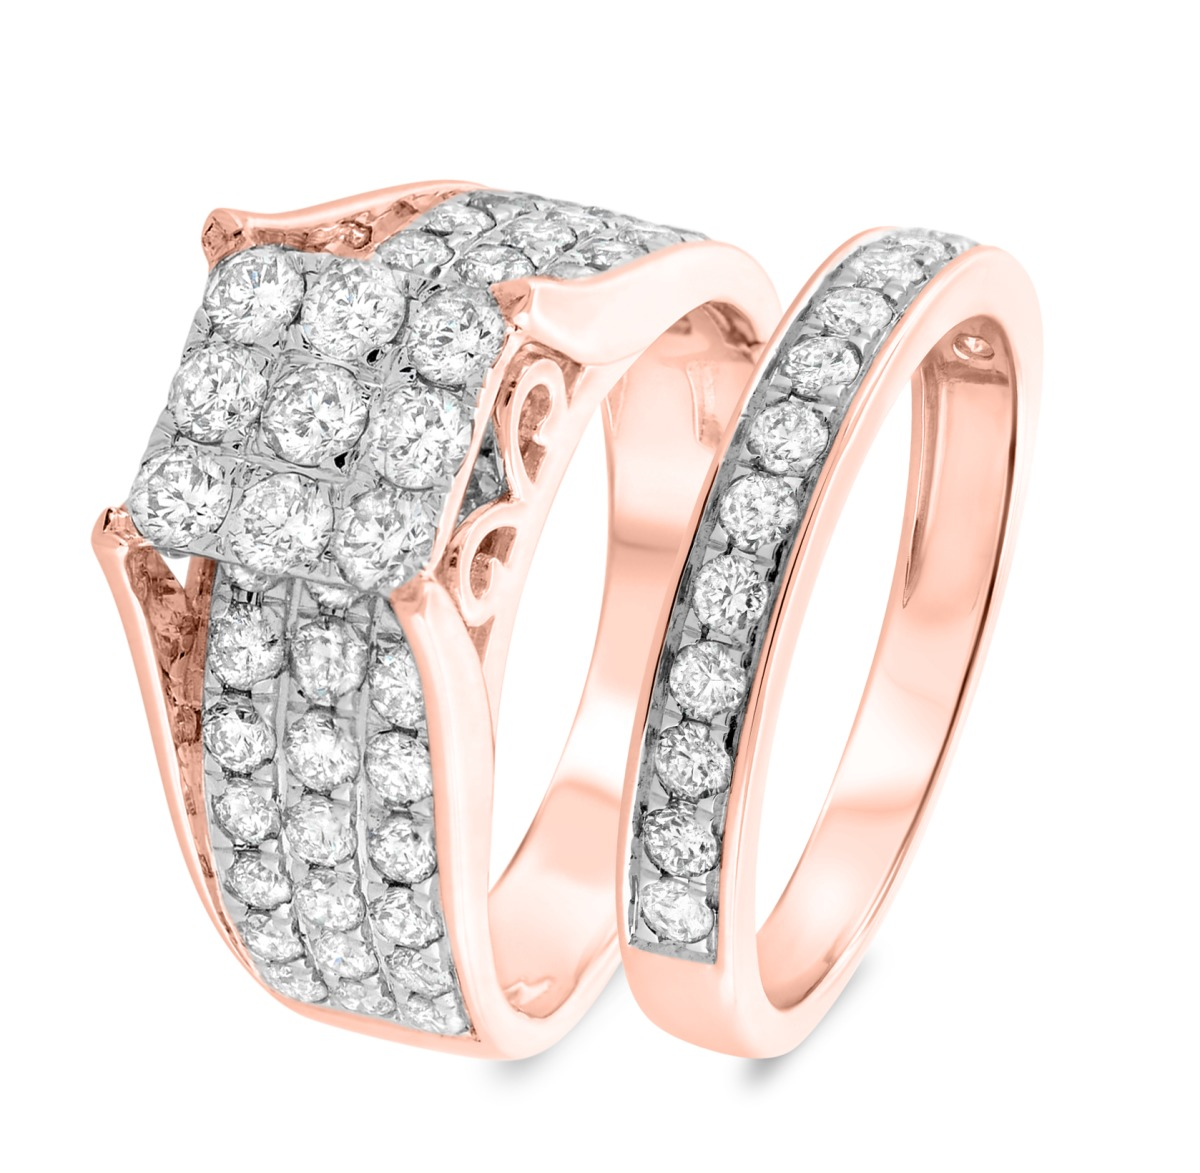 2 1/2 Carat T.W. Diamond Matching Bridal Ring Set 14K Rose Gold